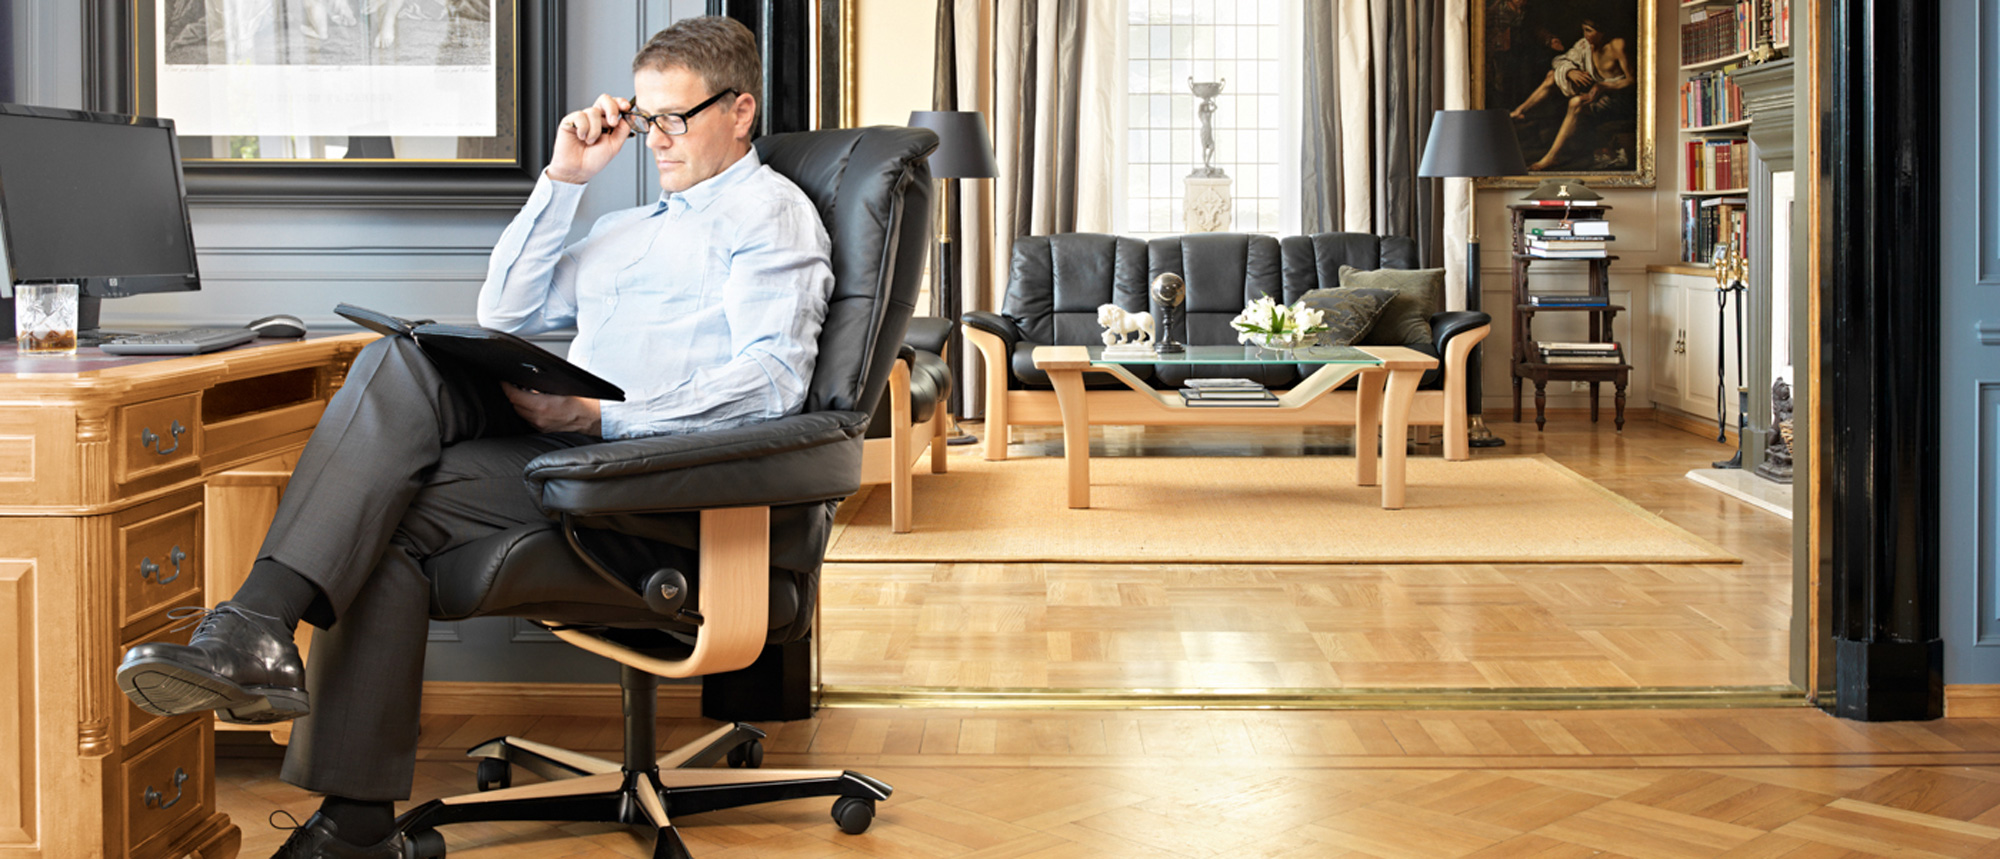 Man sitting in his luxury office furniture.